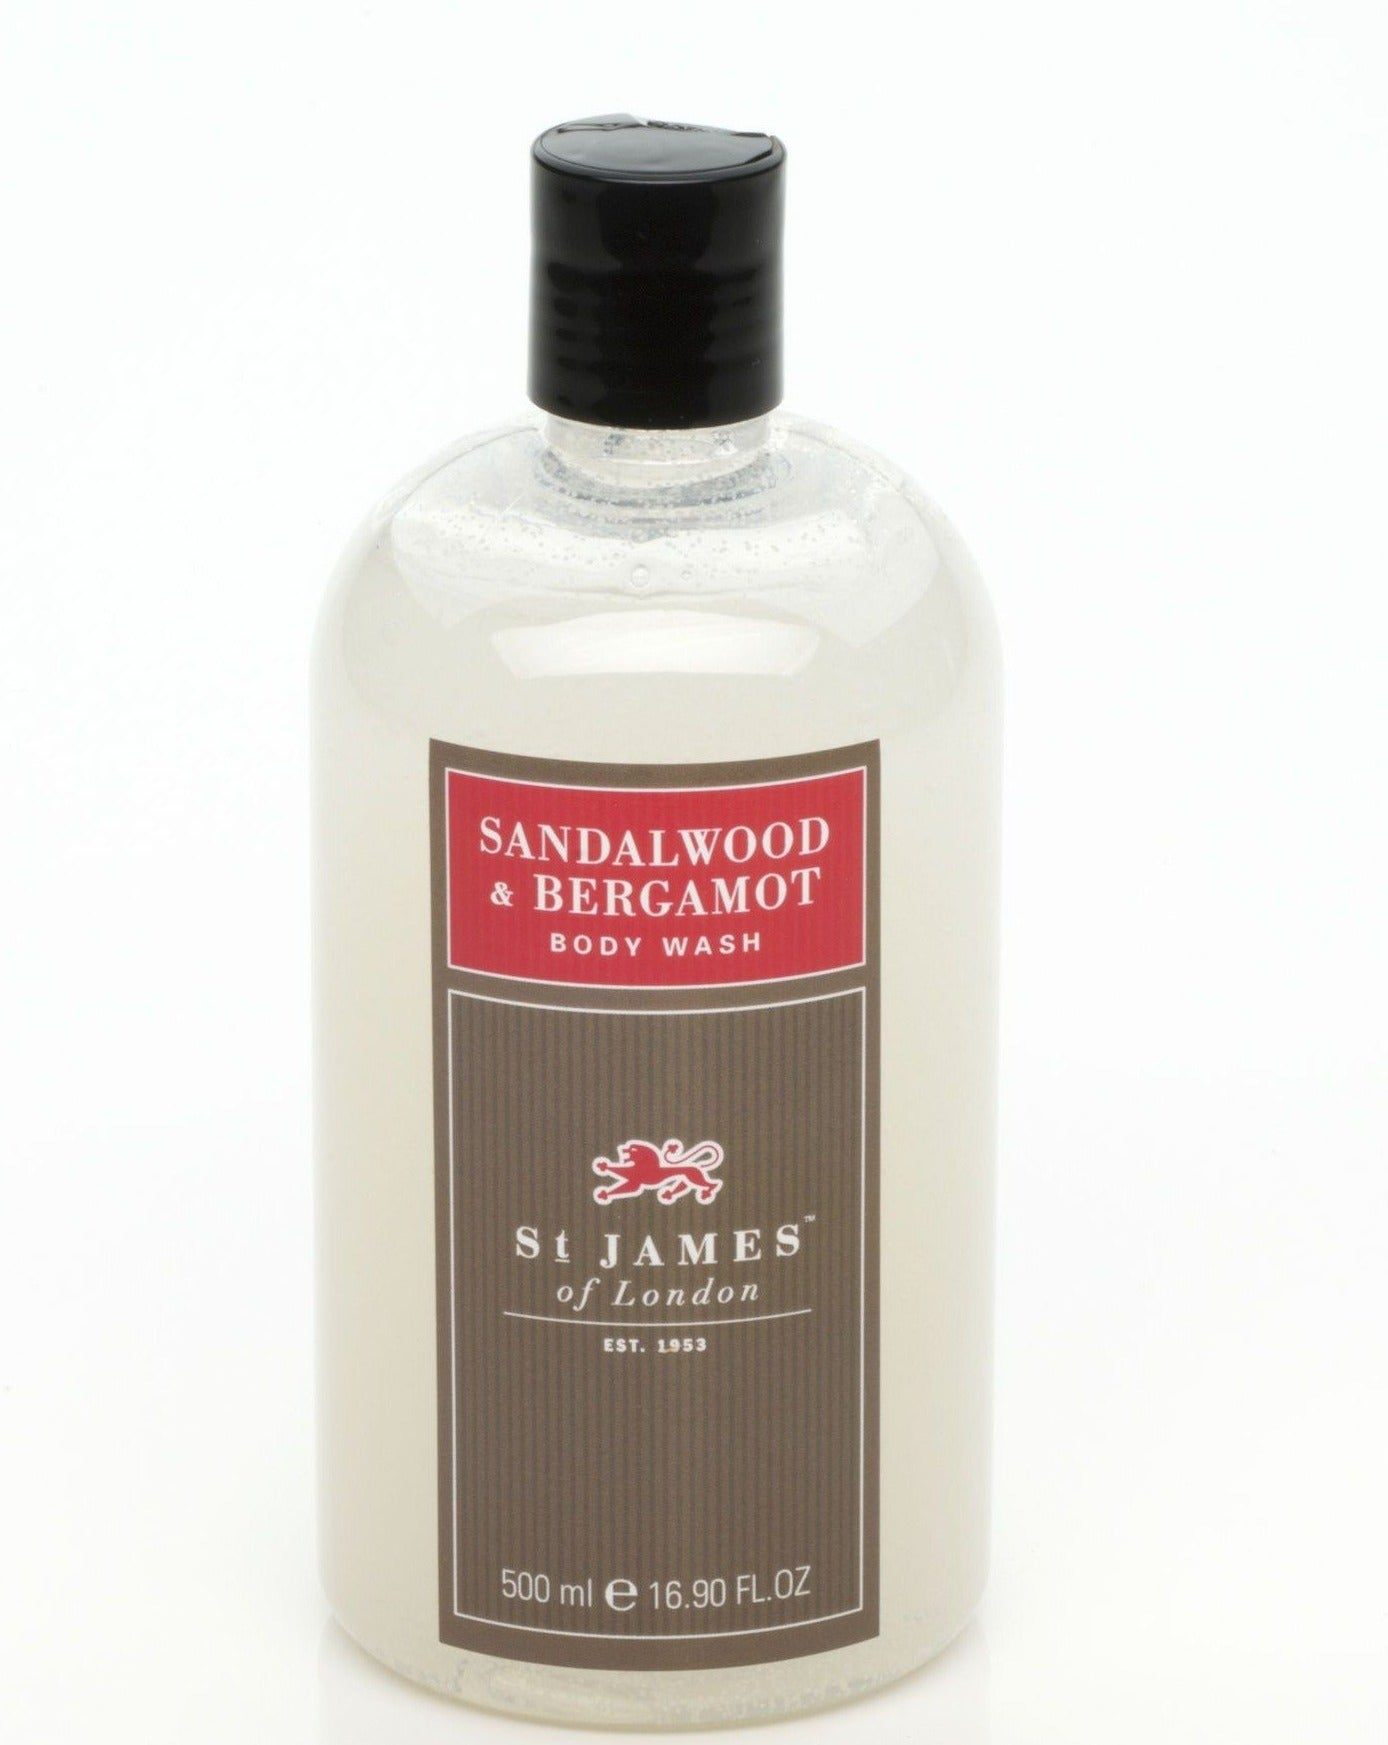 Sandalwood & Bergamot Body Wash 8oz (4434801229878)